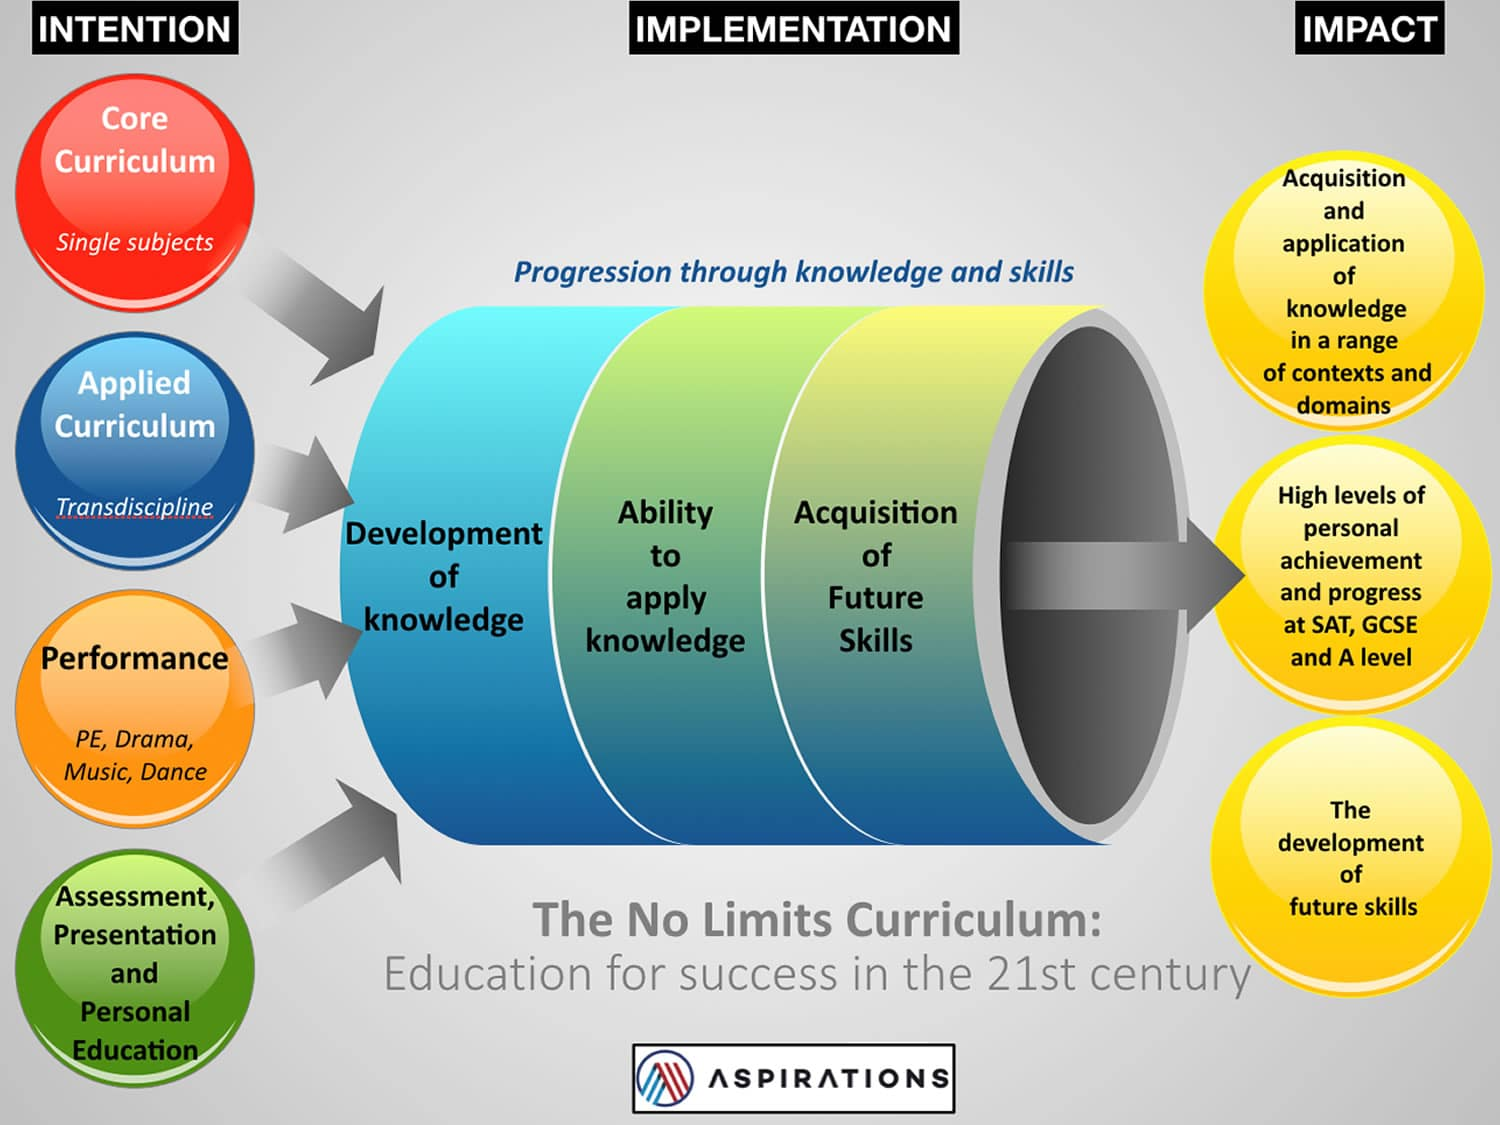 The No Limits Curriculum chart